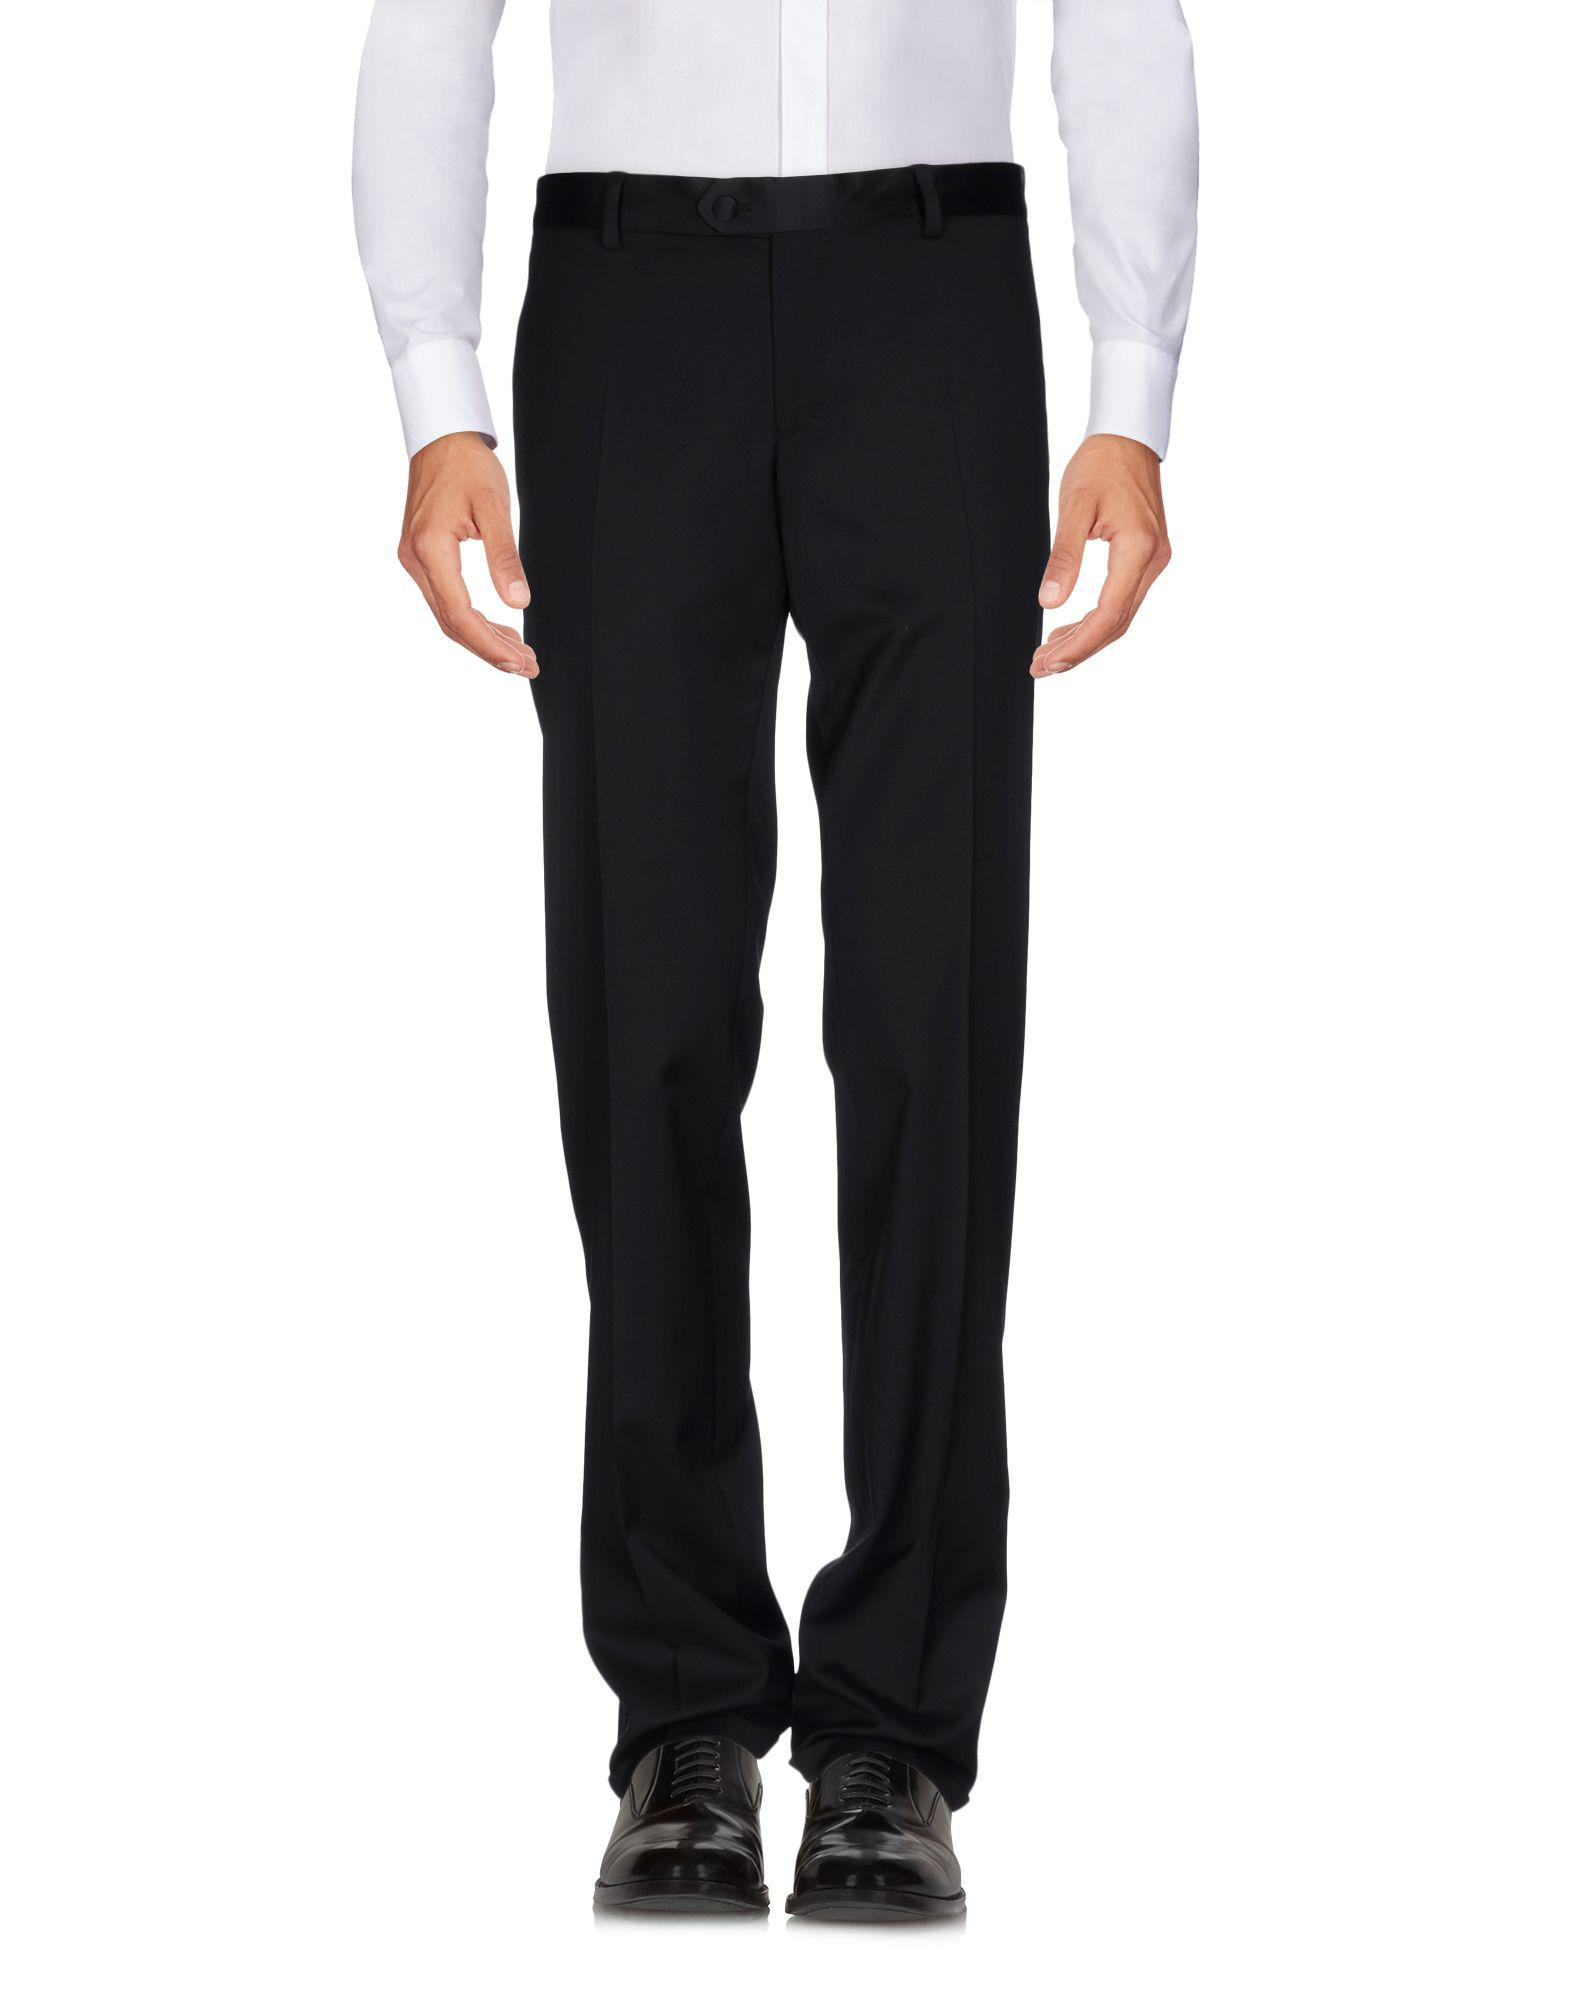 TROUSERS - Casual trousers Lords & Fools YrcCPTLs